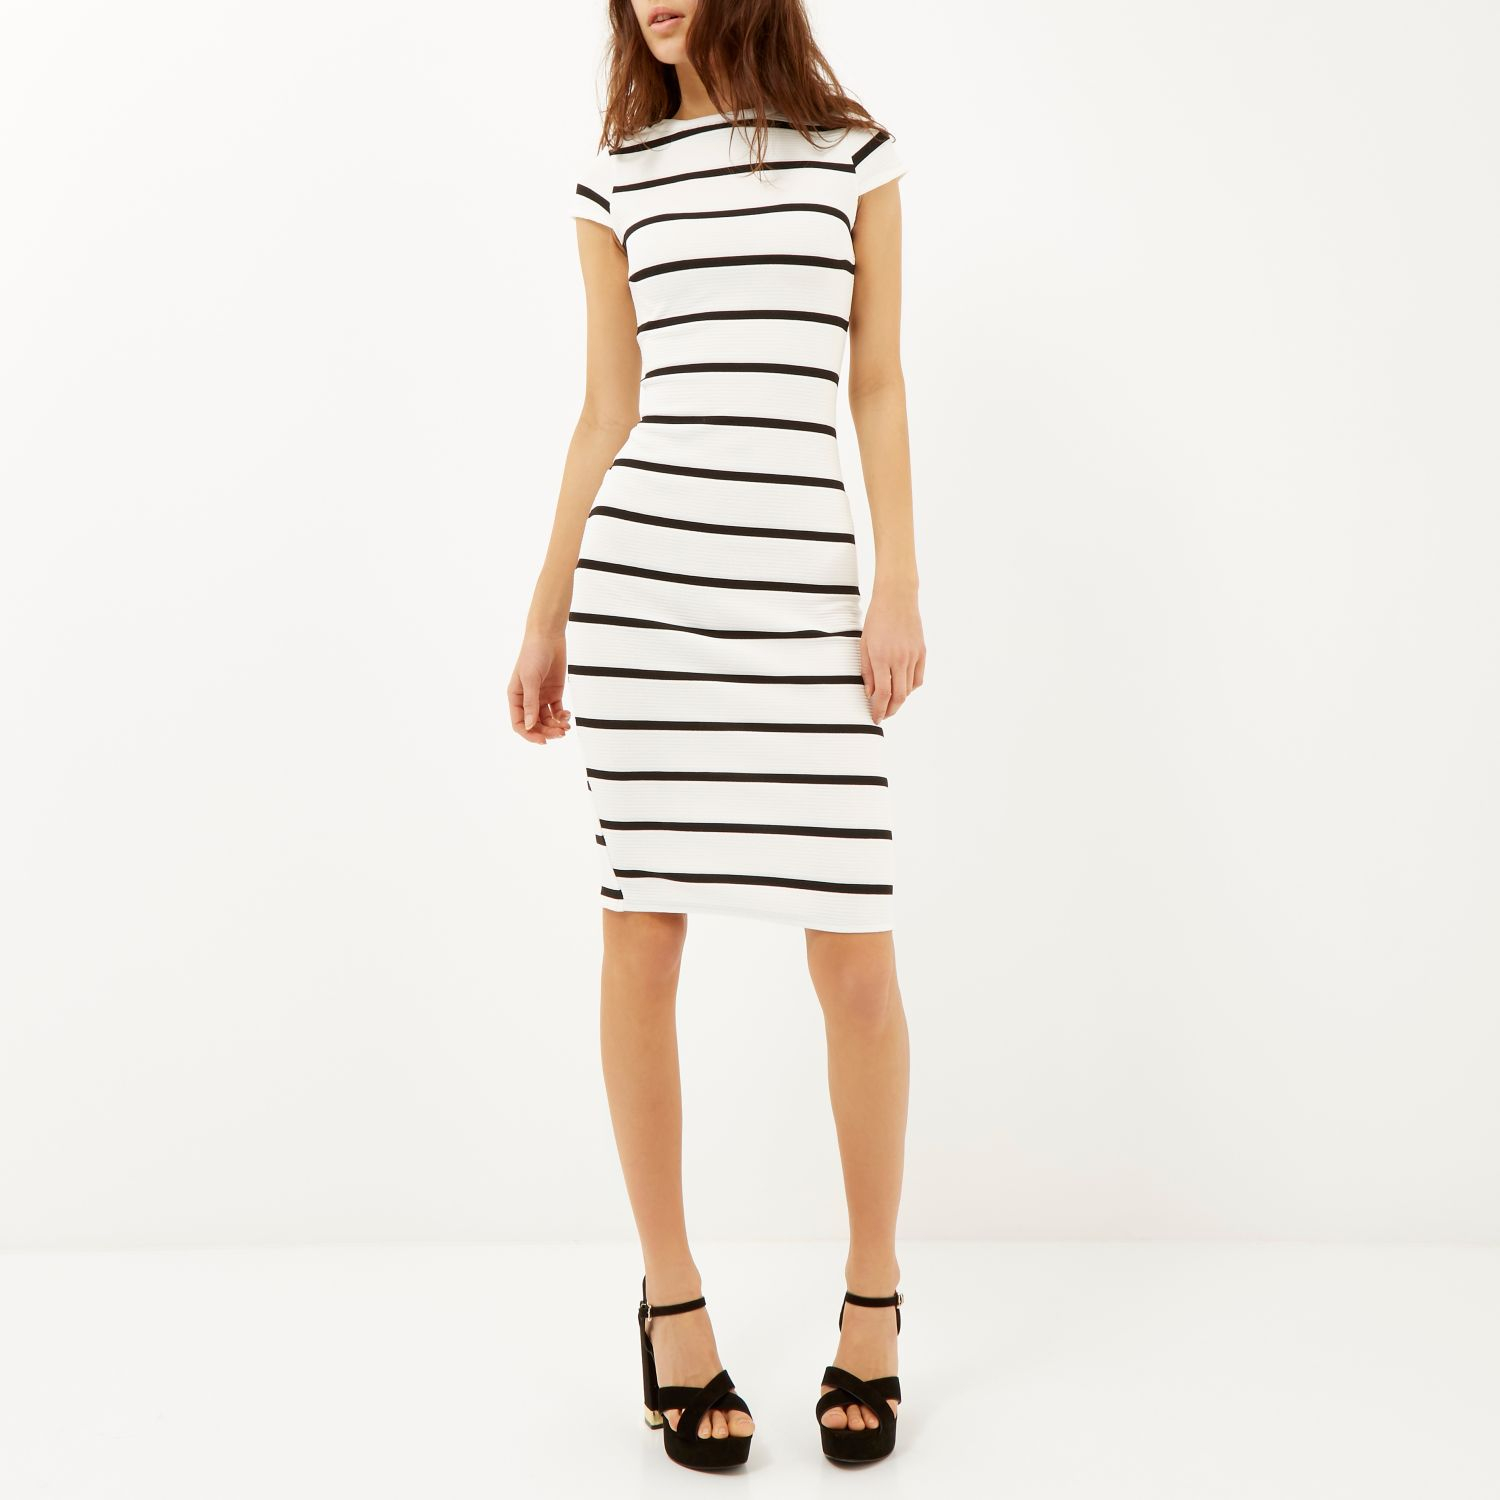 River Island Black And White Striped Midi Dress